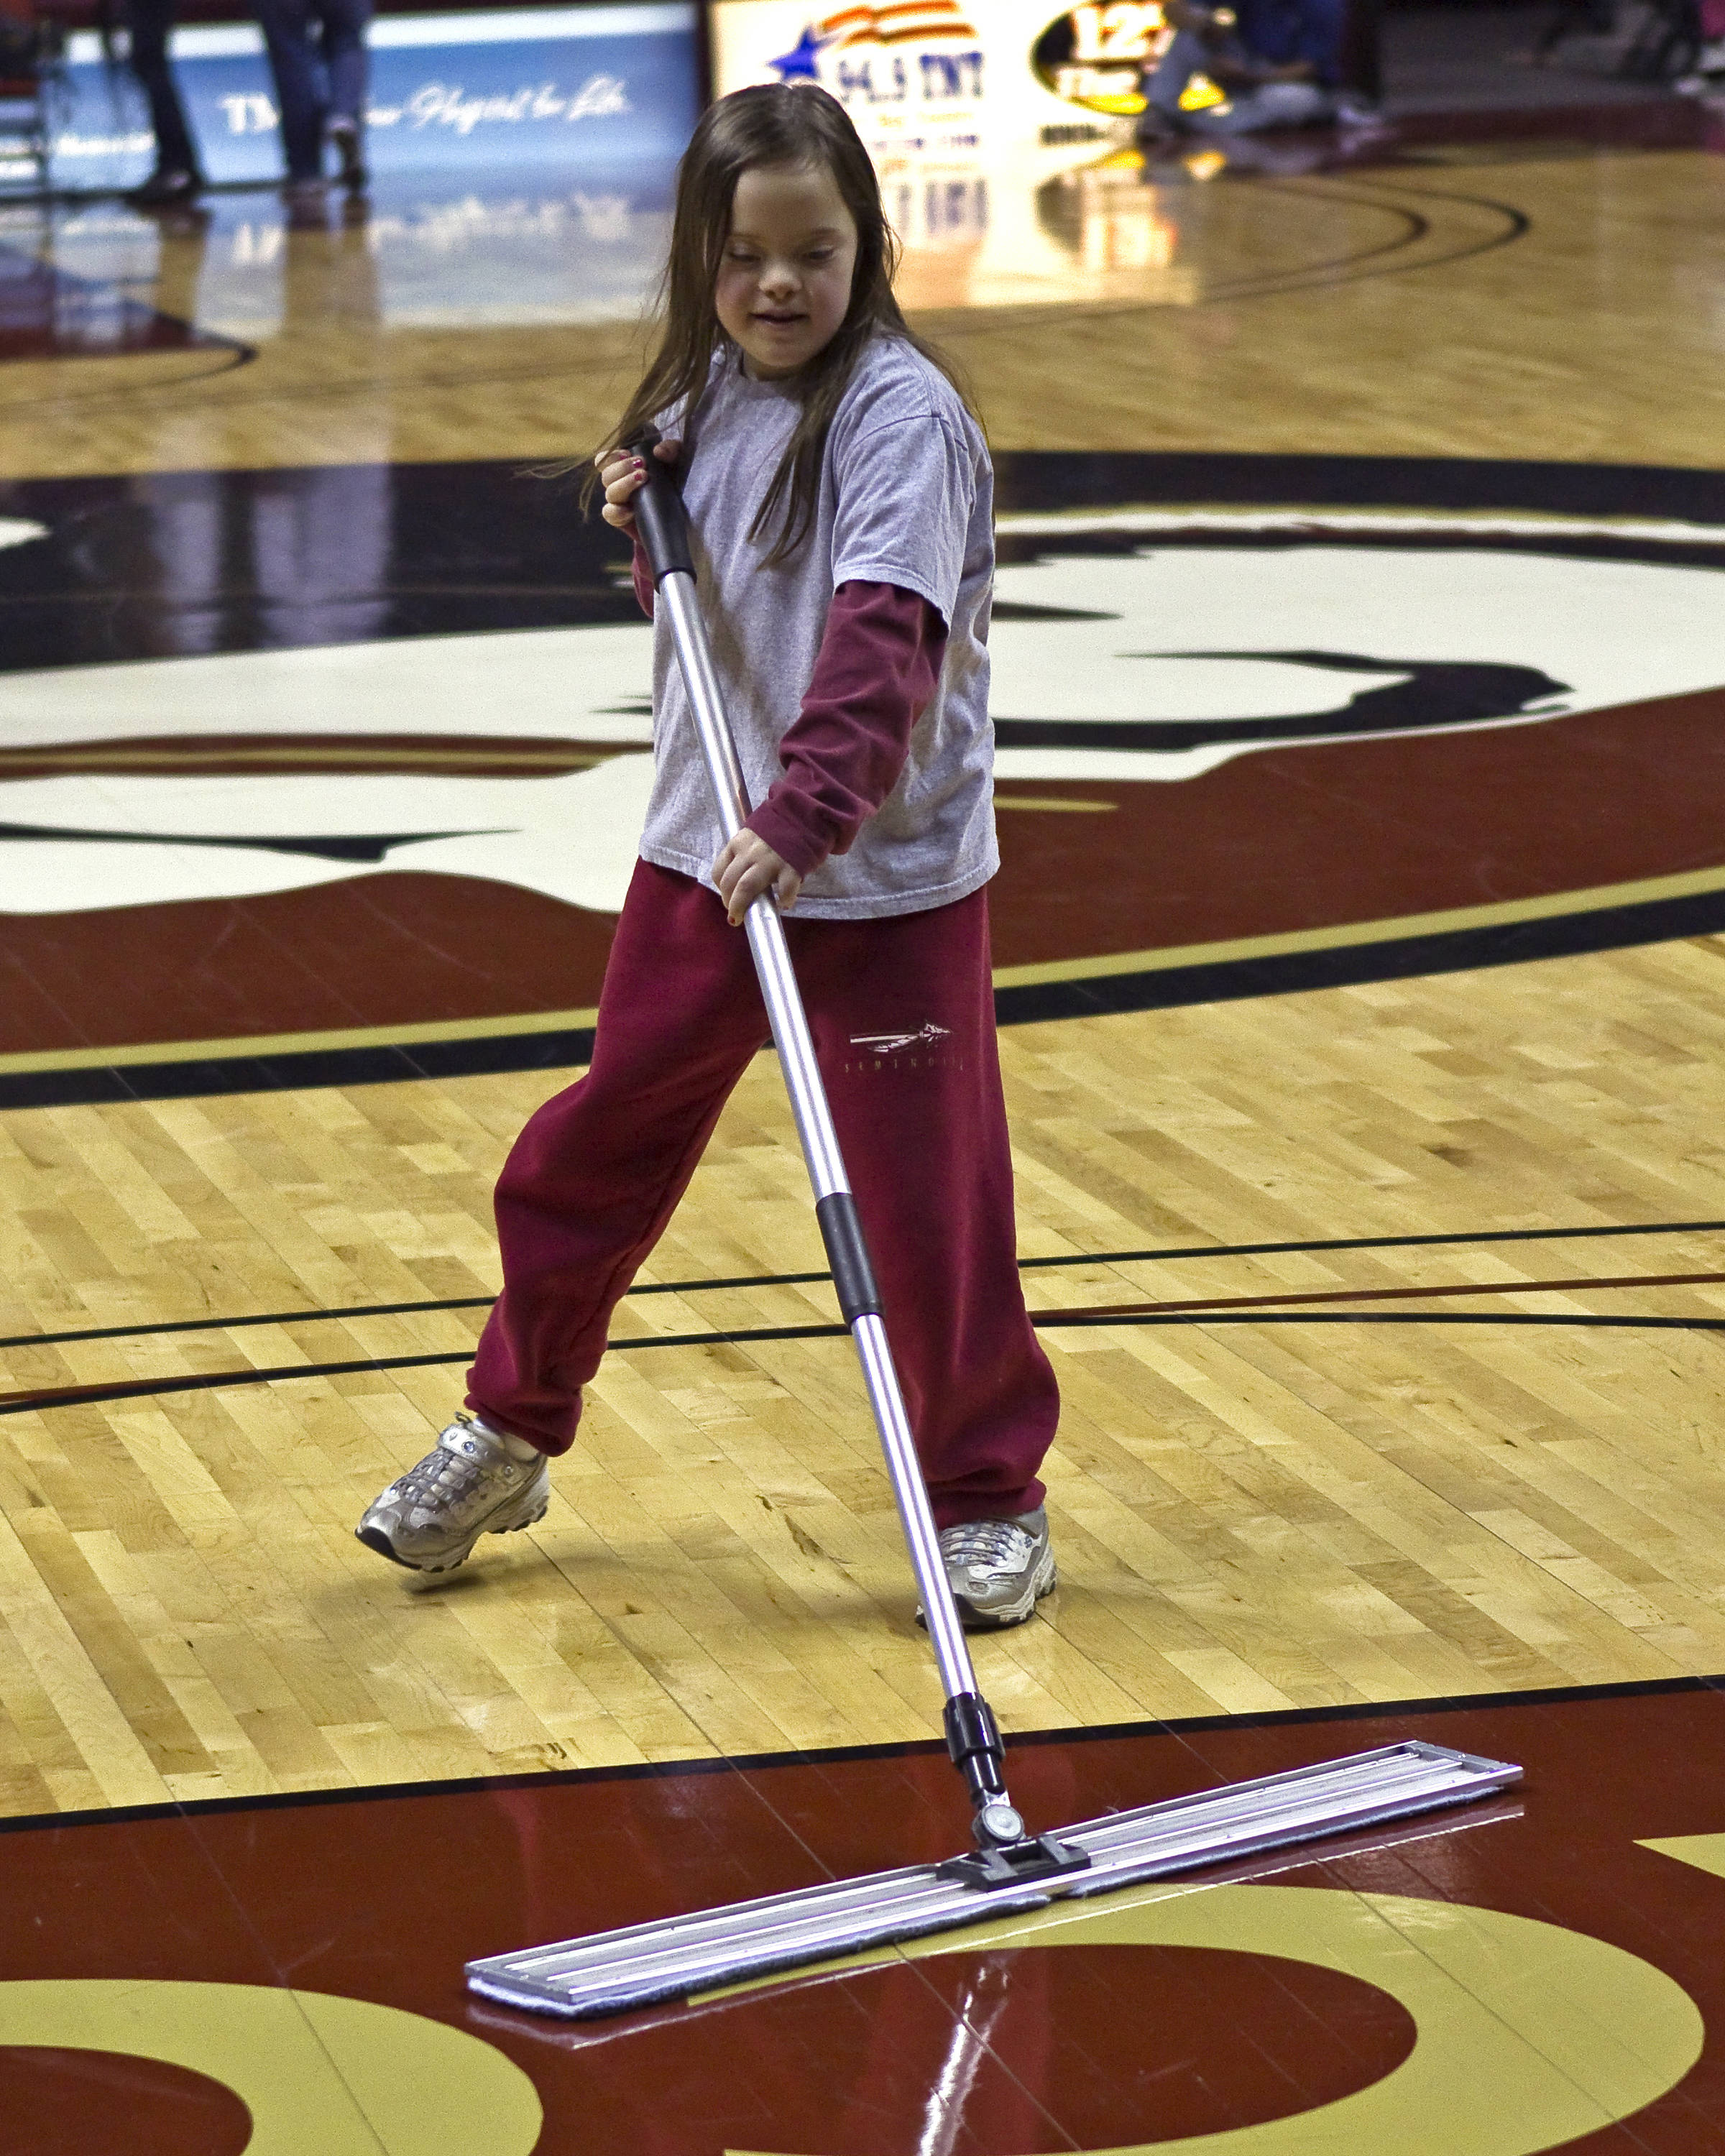 FSU vs Georgia Tech- 02//11/11 - a young on-court helper